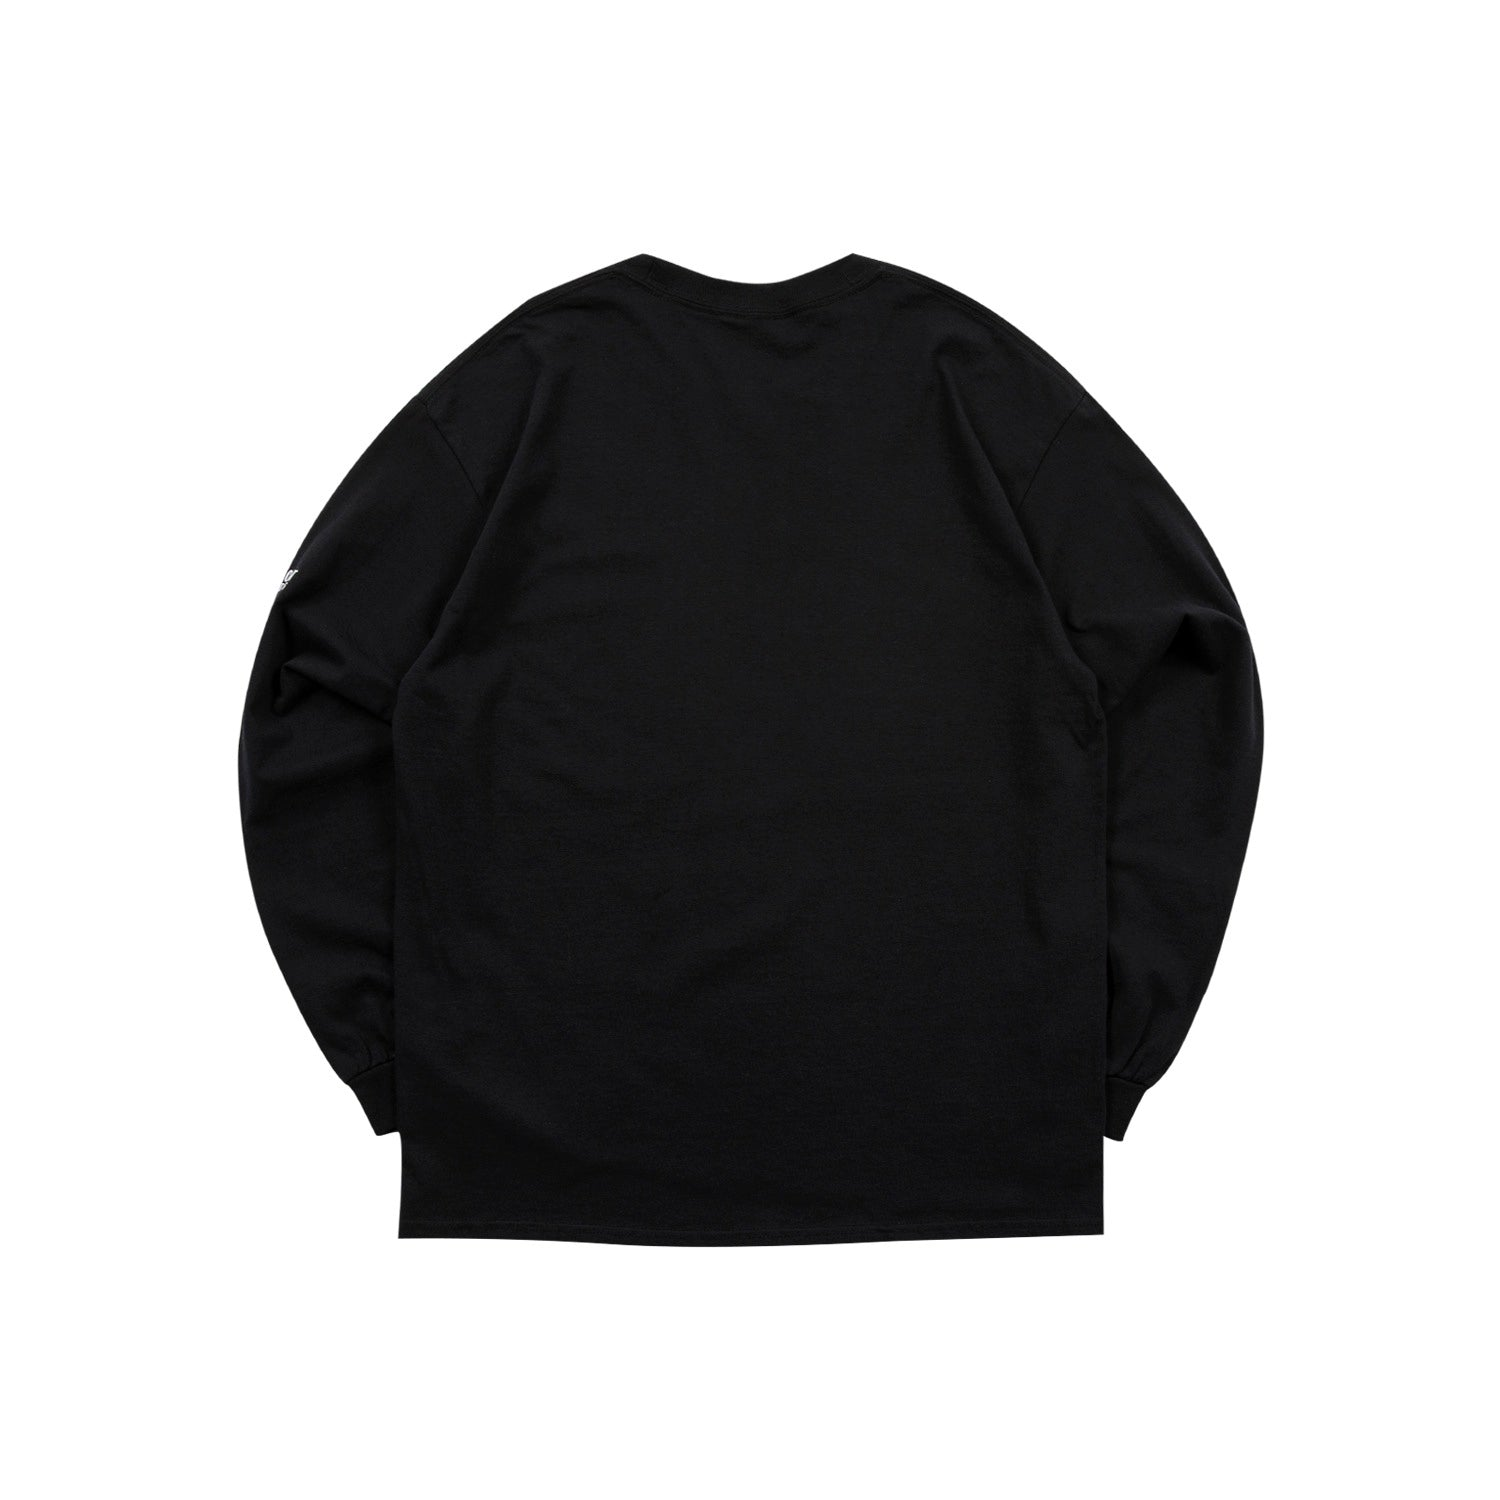 Nujabes Long Sleeve - Black